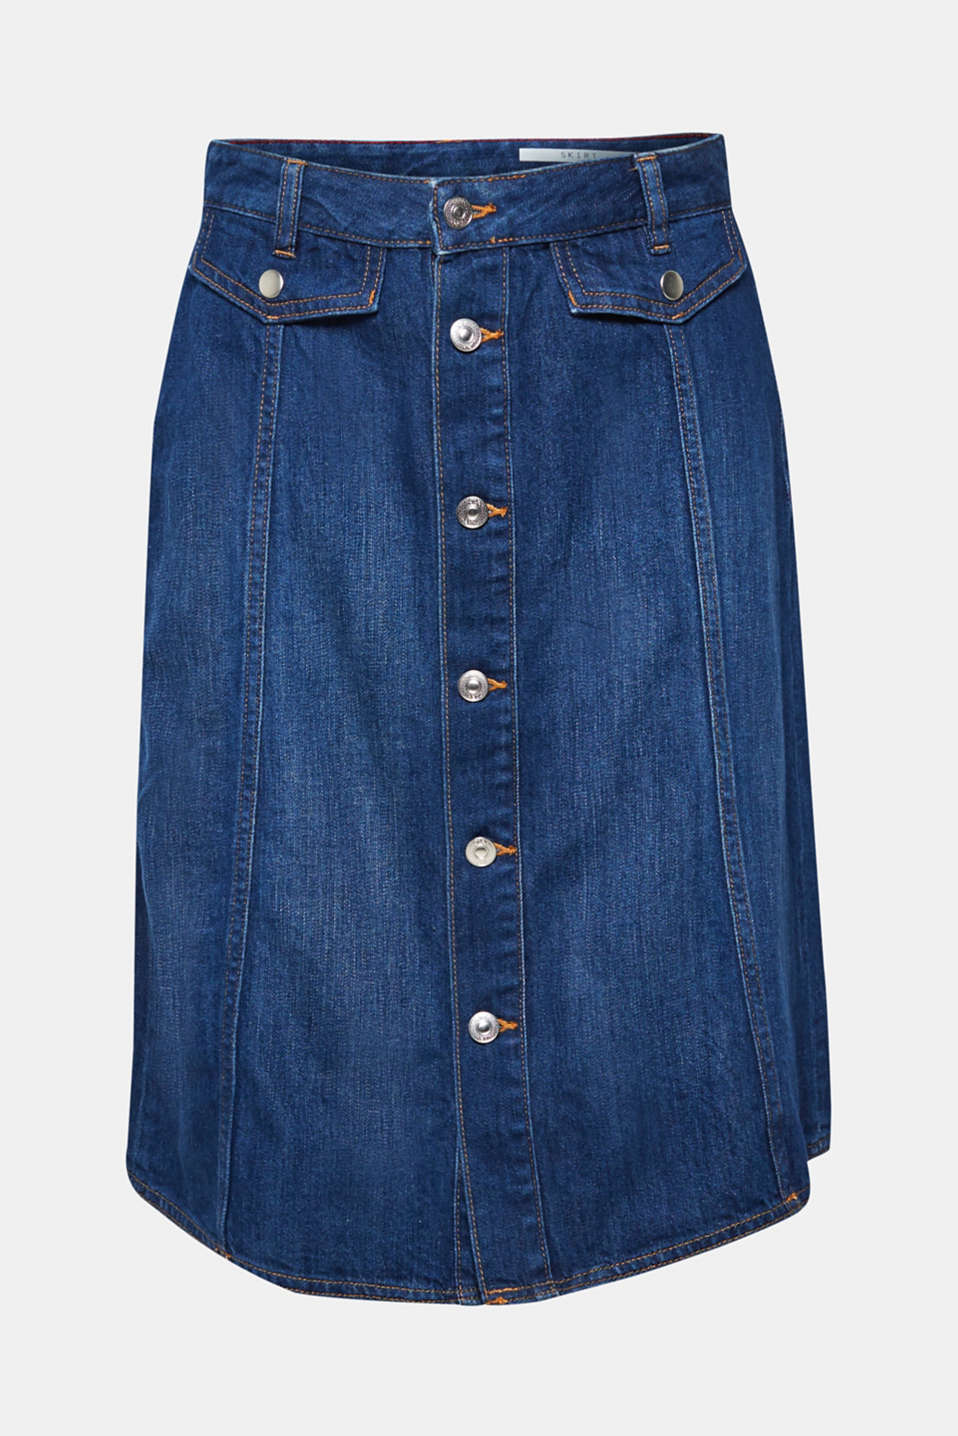 Skirts denim, BLUE DARK WASH, detail image number 8